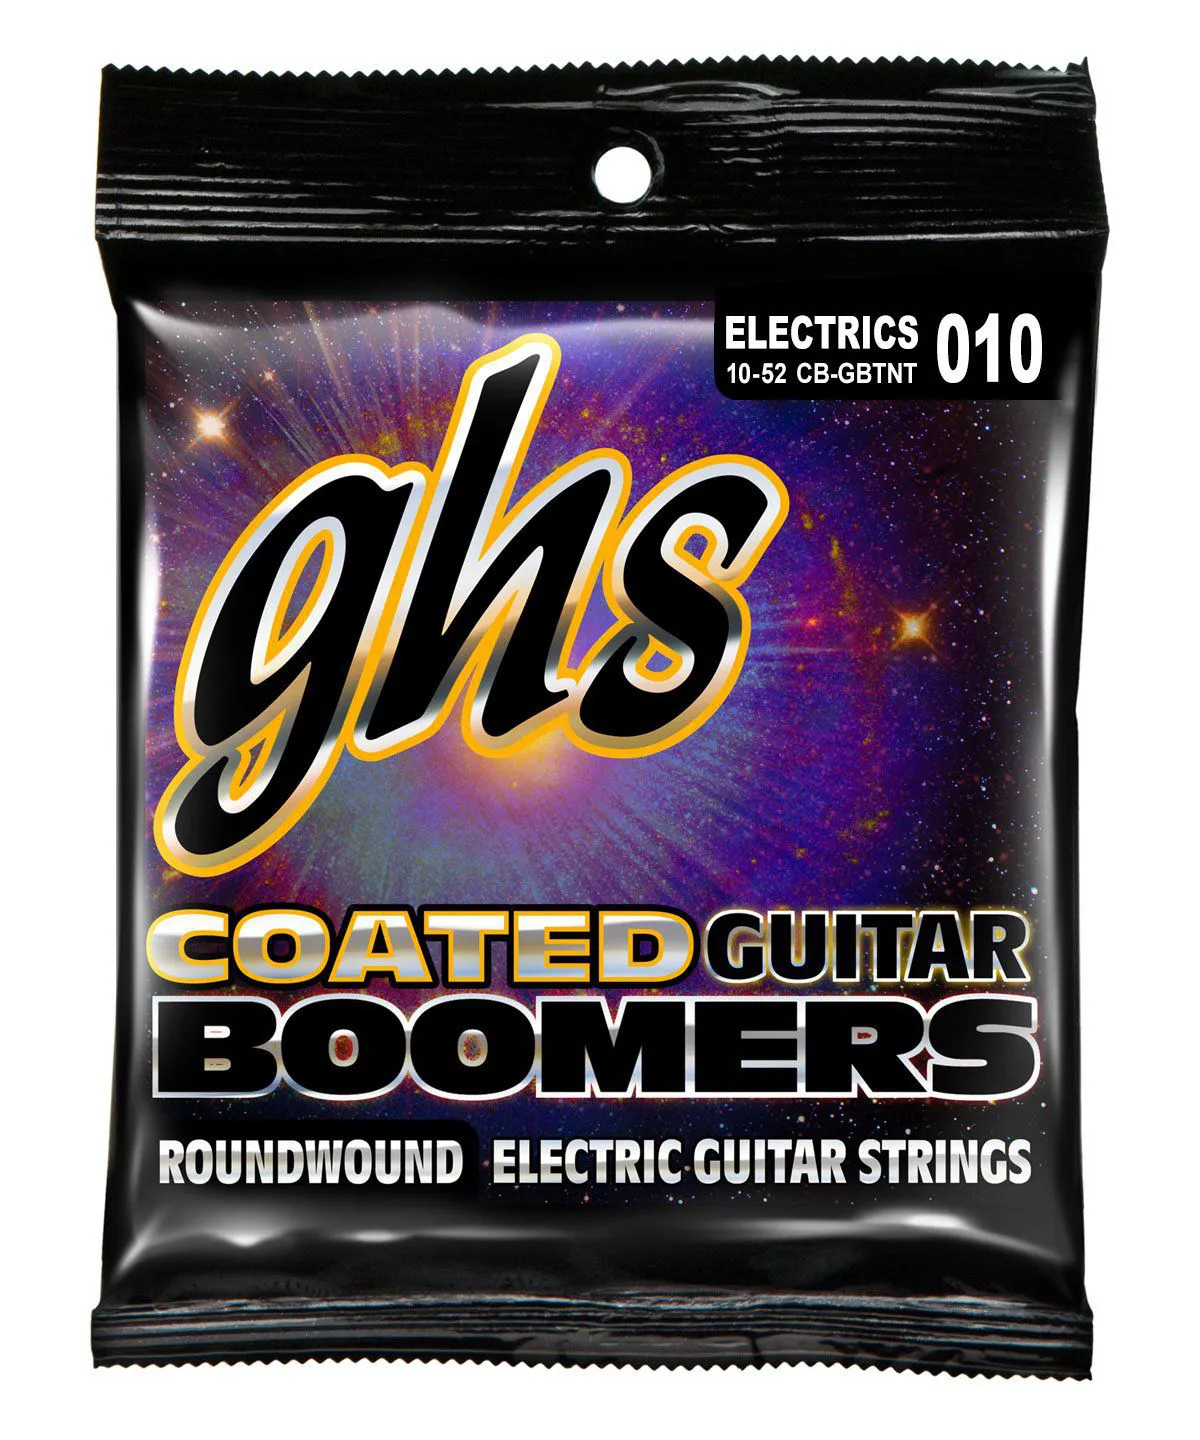 CB-GBTNT - ENC GUIT 6C COATED BOOMERS 010/052 - GHS